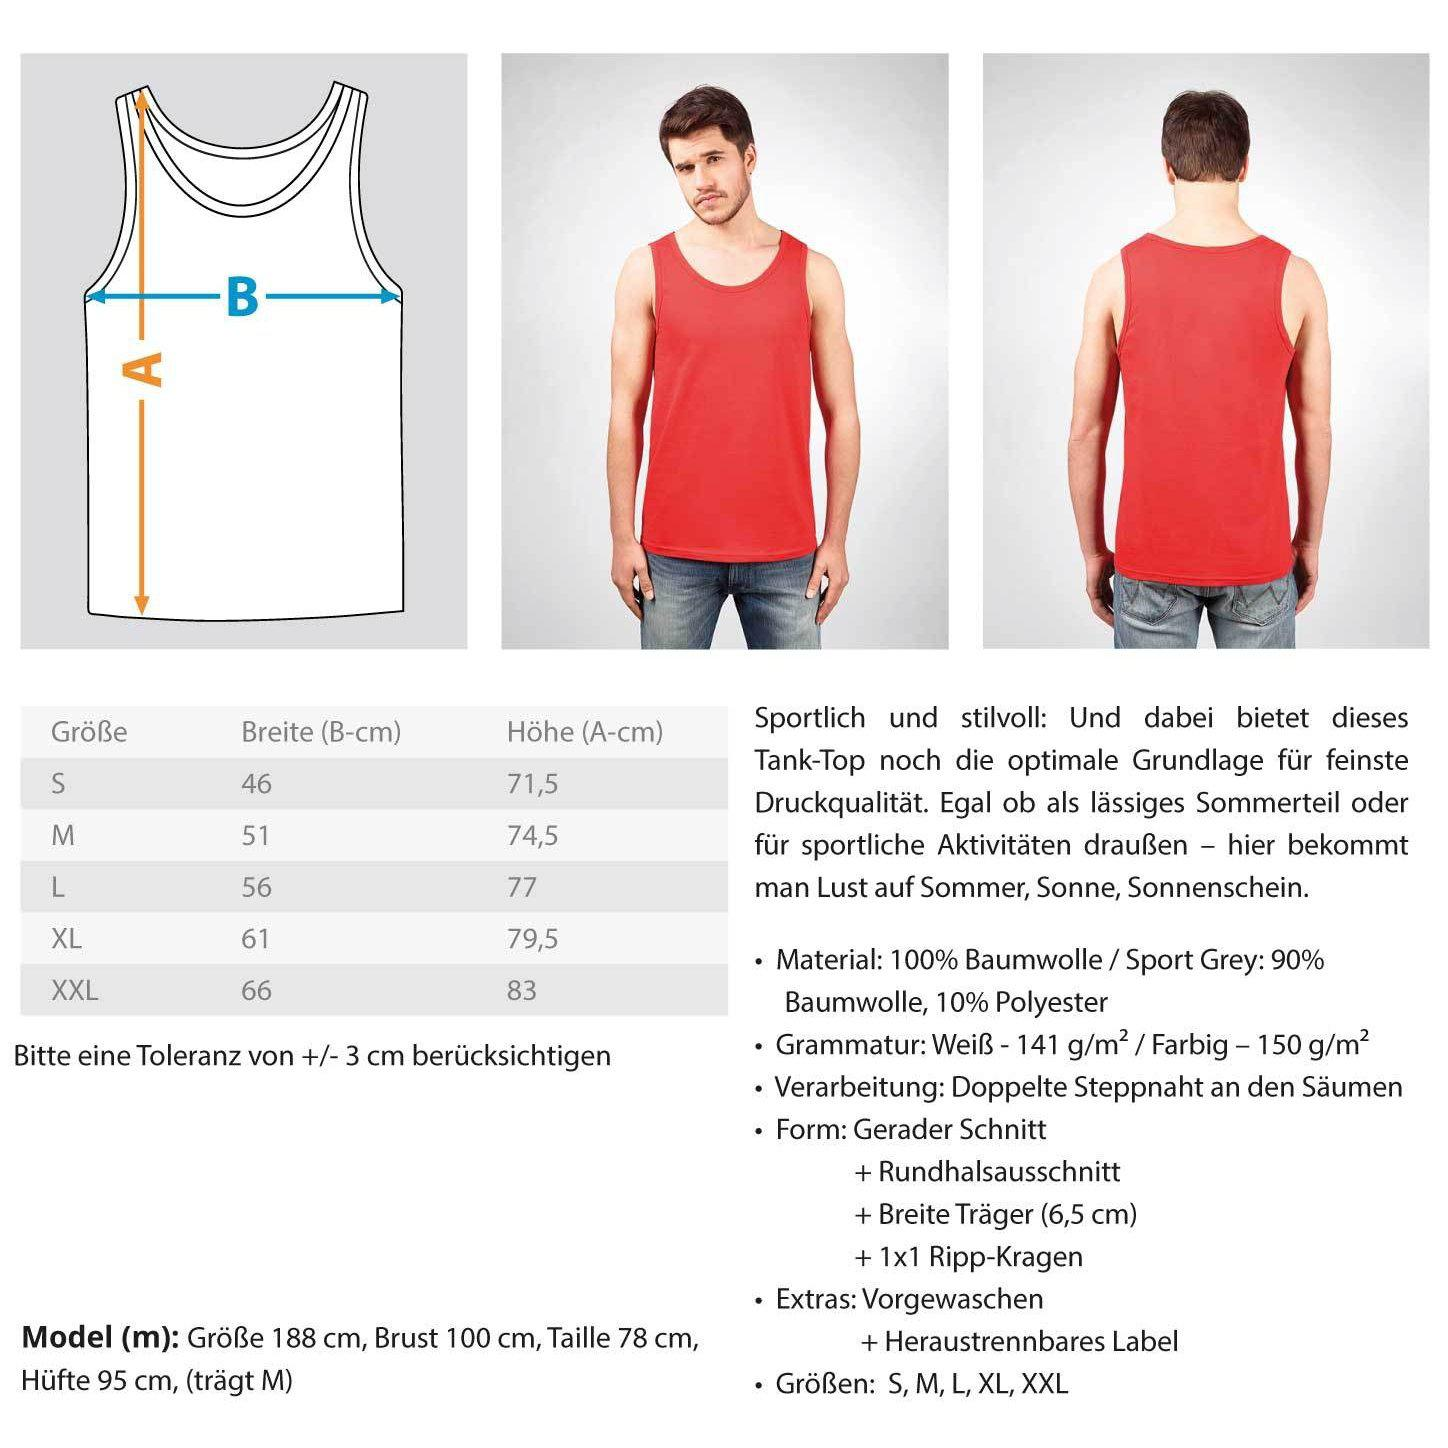 Nach Techno kommt Dienstag w - Rave On!® - Herren Tanktop Herren Tank-Top - Rave On!® der Club & Techno Szene Shop für Coole Junge Mode Streetwear Style & Fashion Outfits + Sexy Festival 420 Stuff